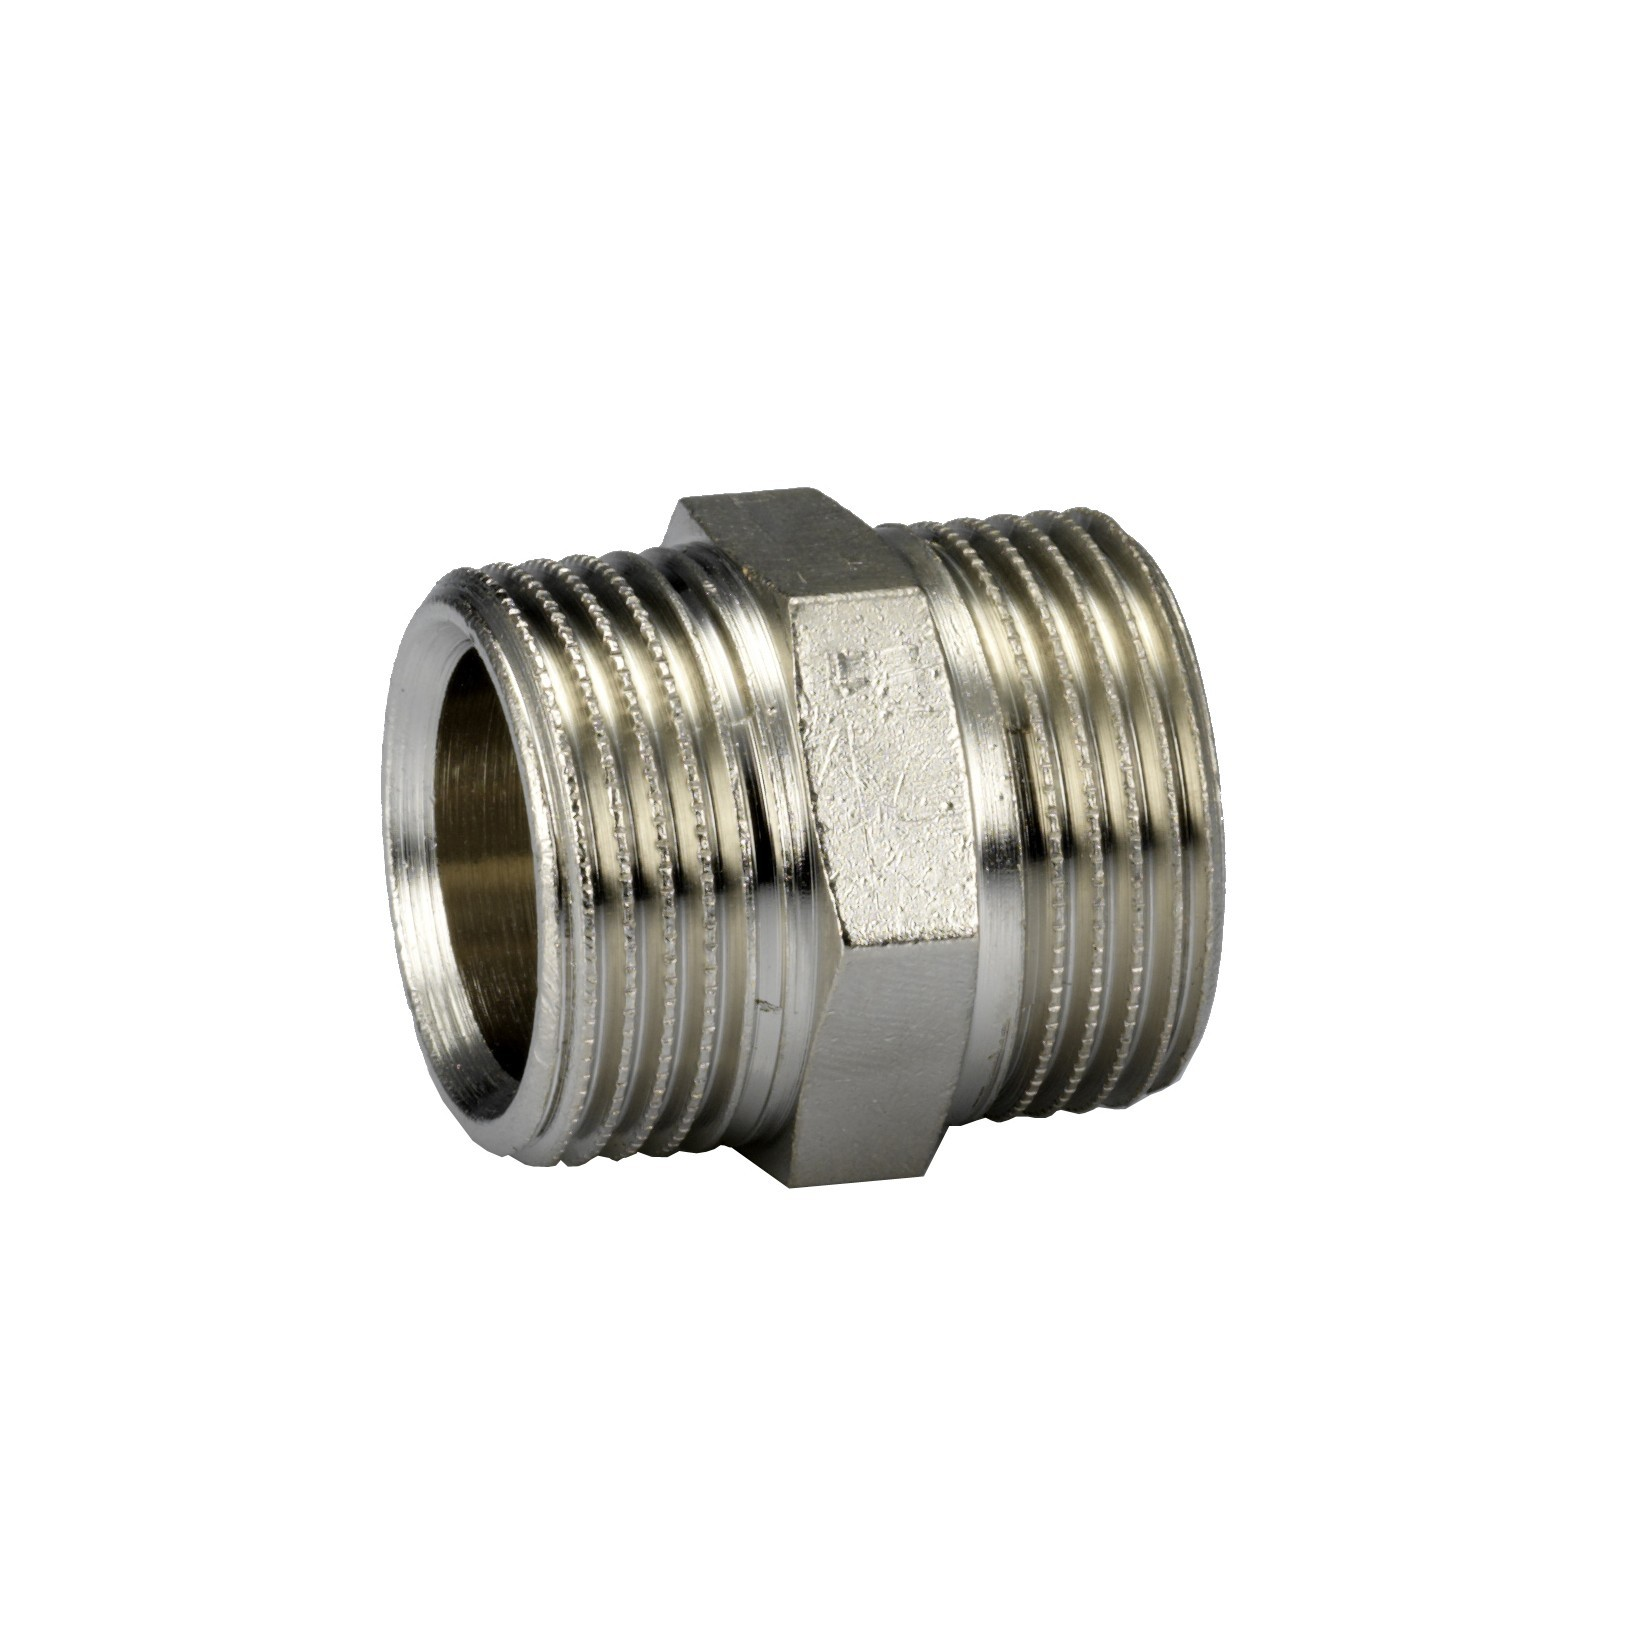 Eurocone Straight Connector